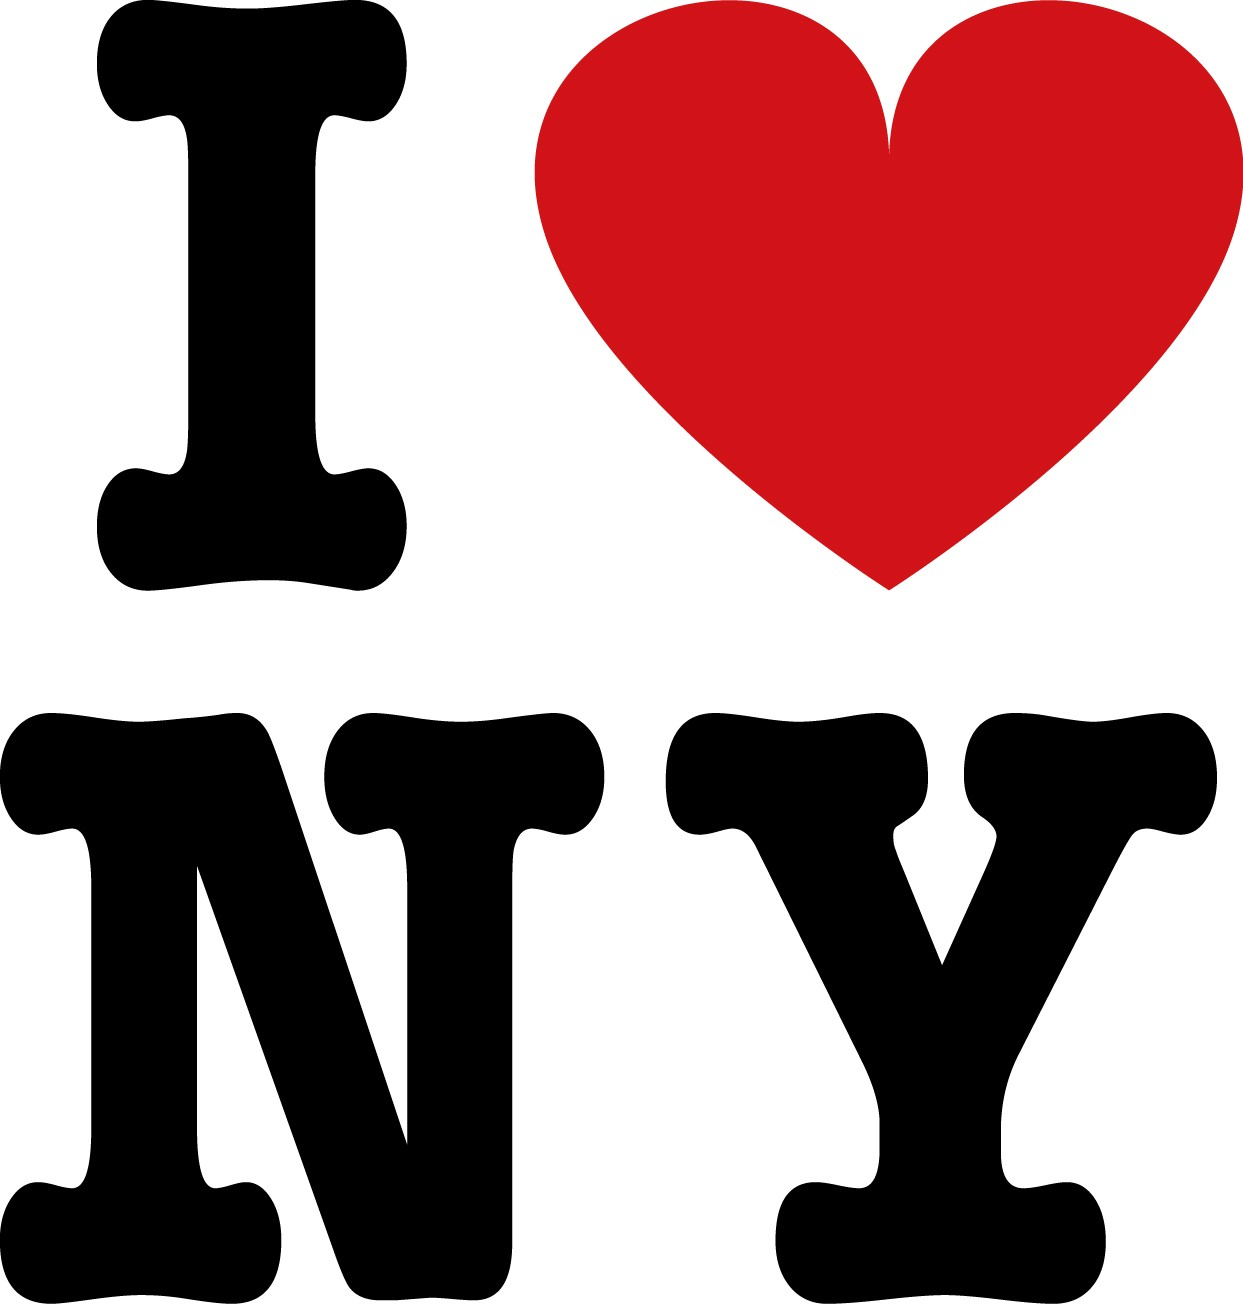 Free Ny Cliparts, Download Free Clip Art, Free Clip Art on Clipart.